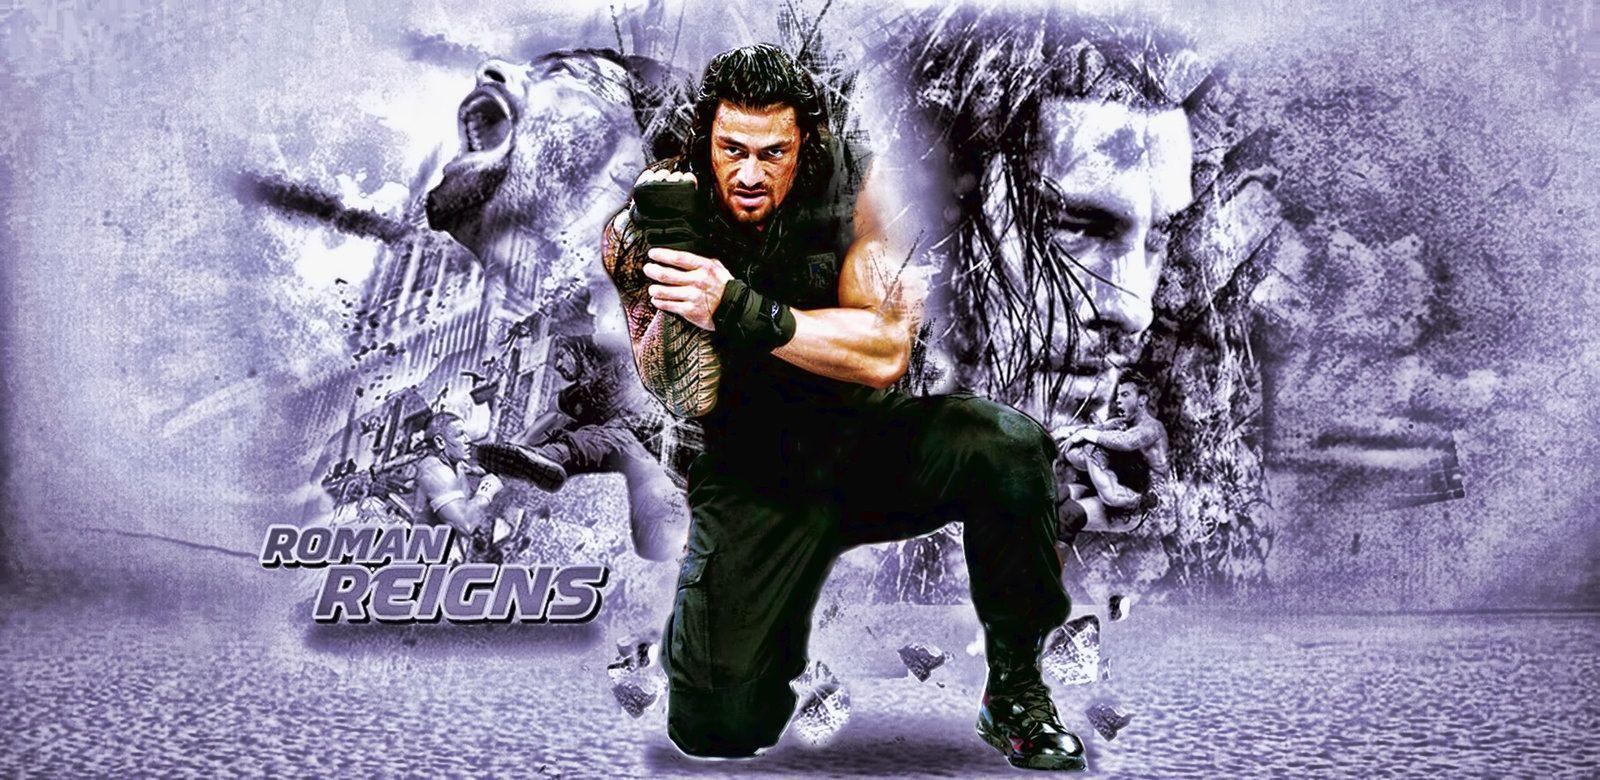 Roman Reigns Pictures And HD Wallpapers